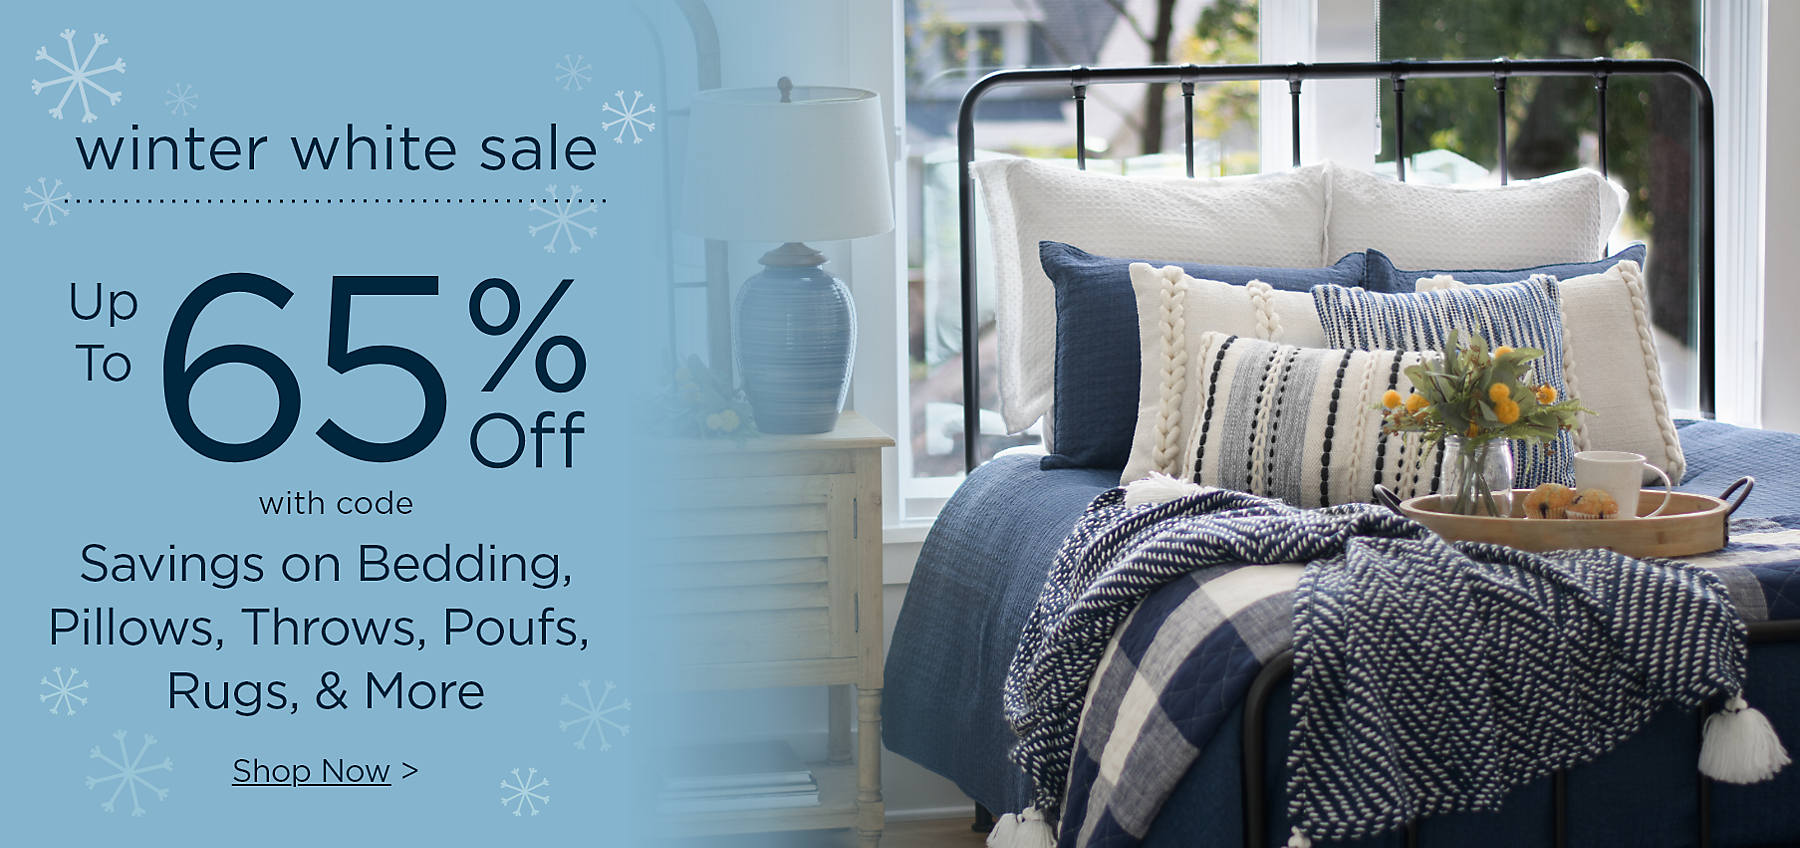 Winter White Sale Up to 65% Off with code Savings on Bedding, Pillows, Throws, Poufs, Rugs, & More Shop Now